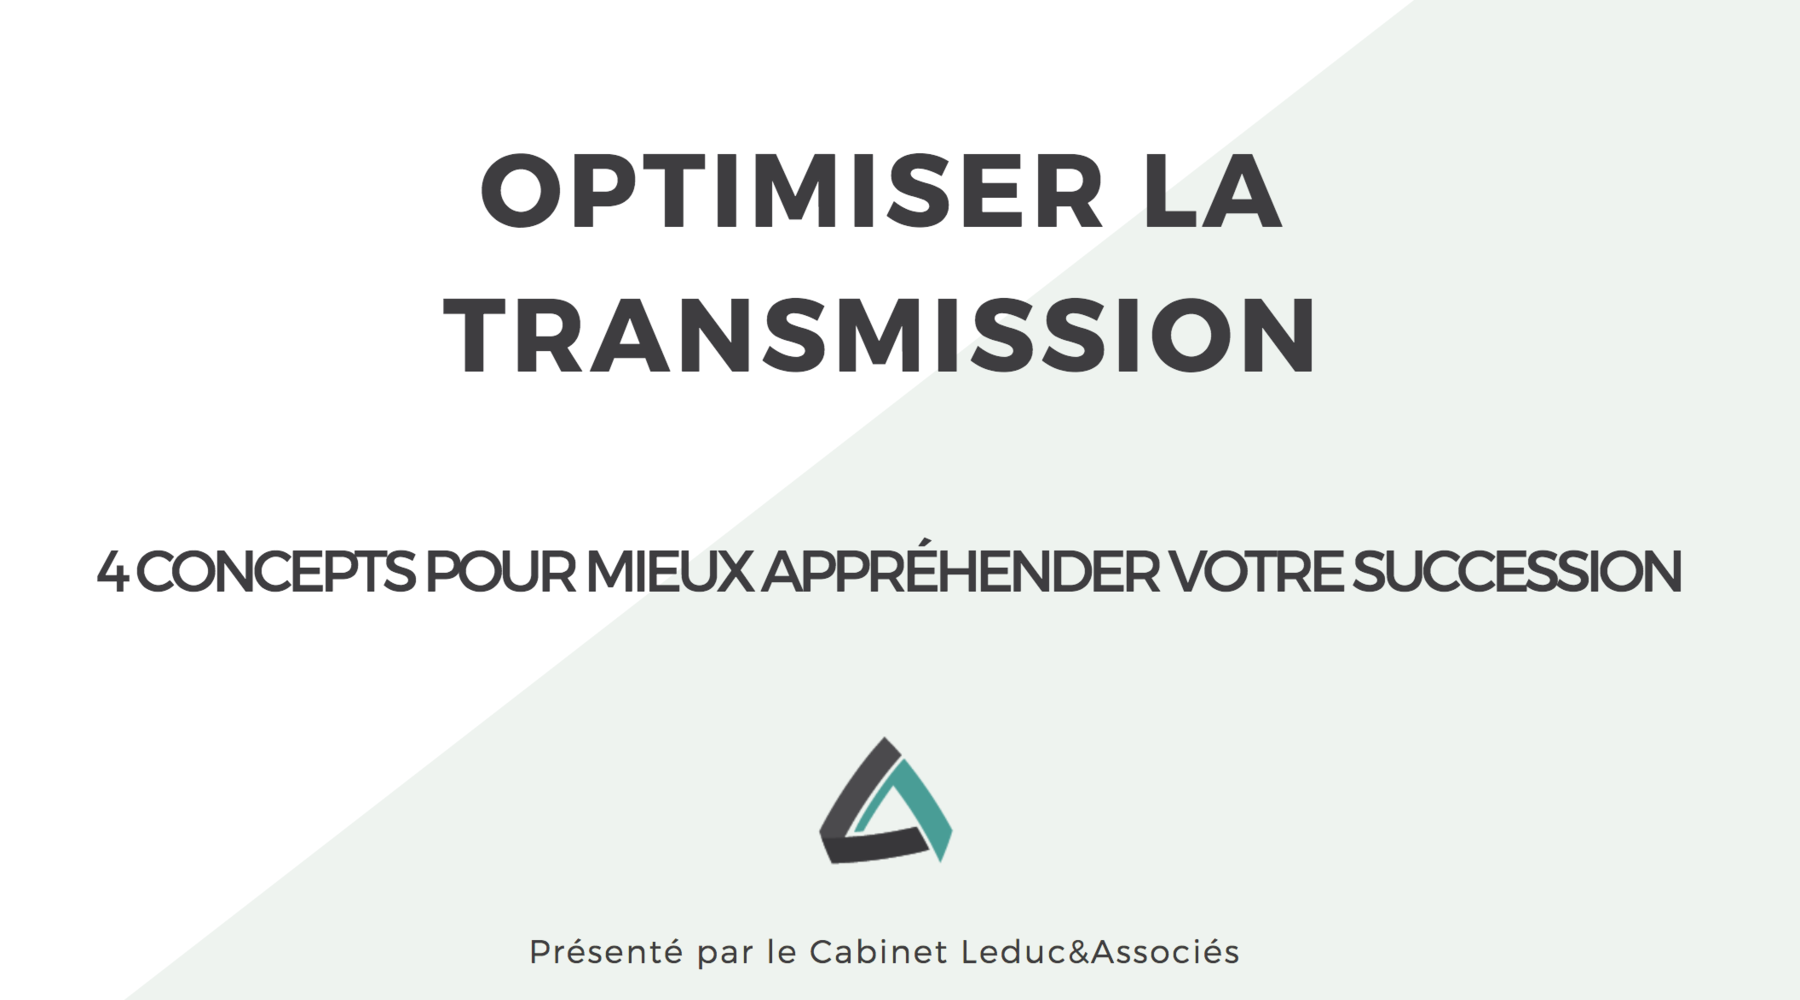 Optimiser la transmission